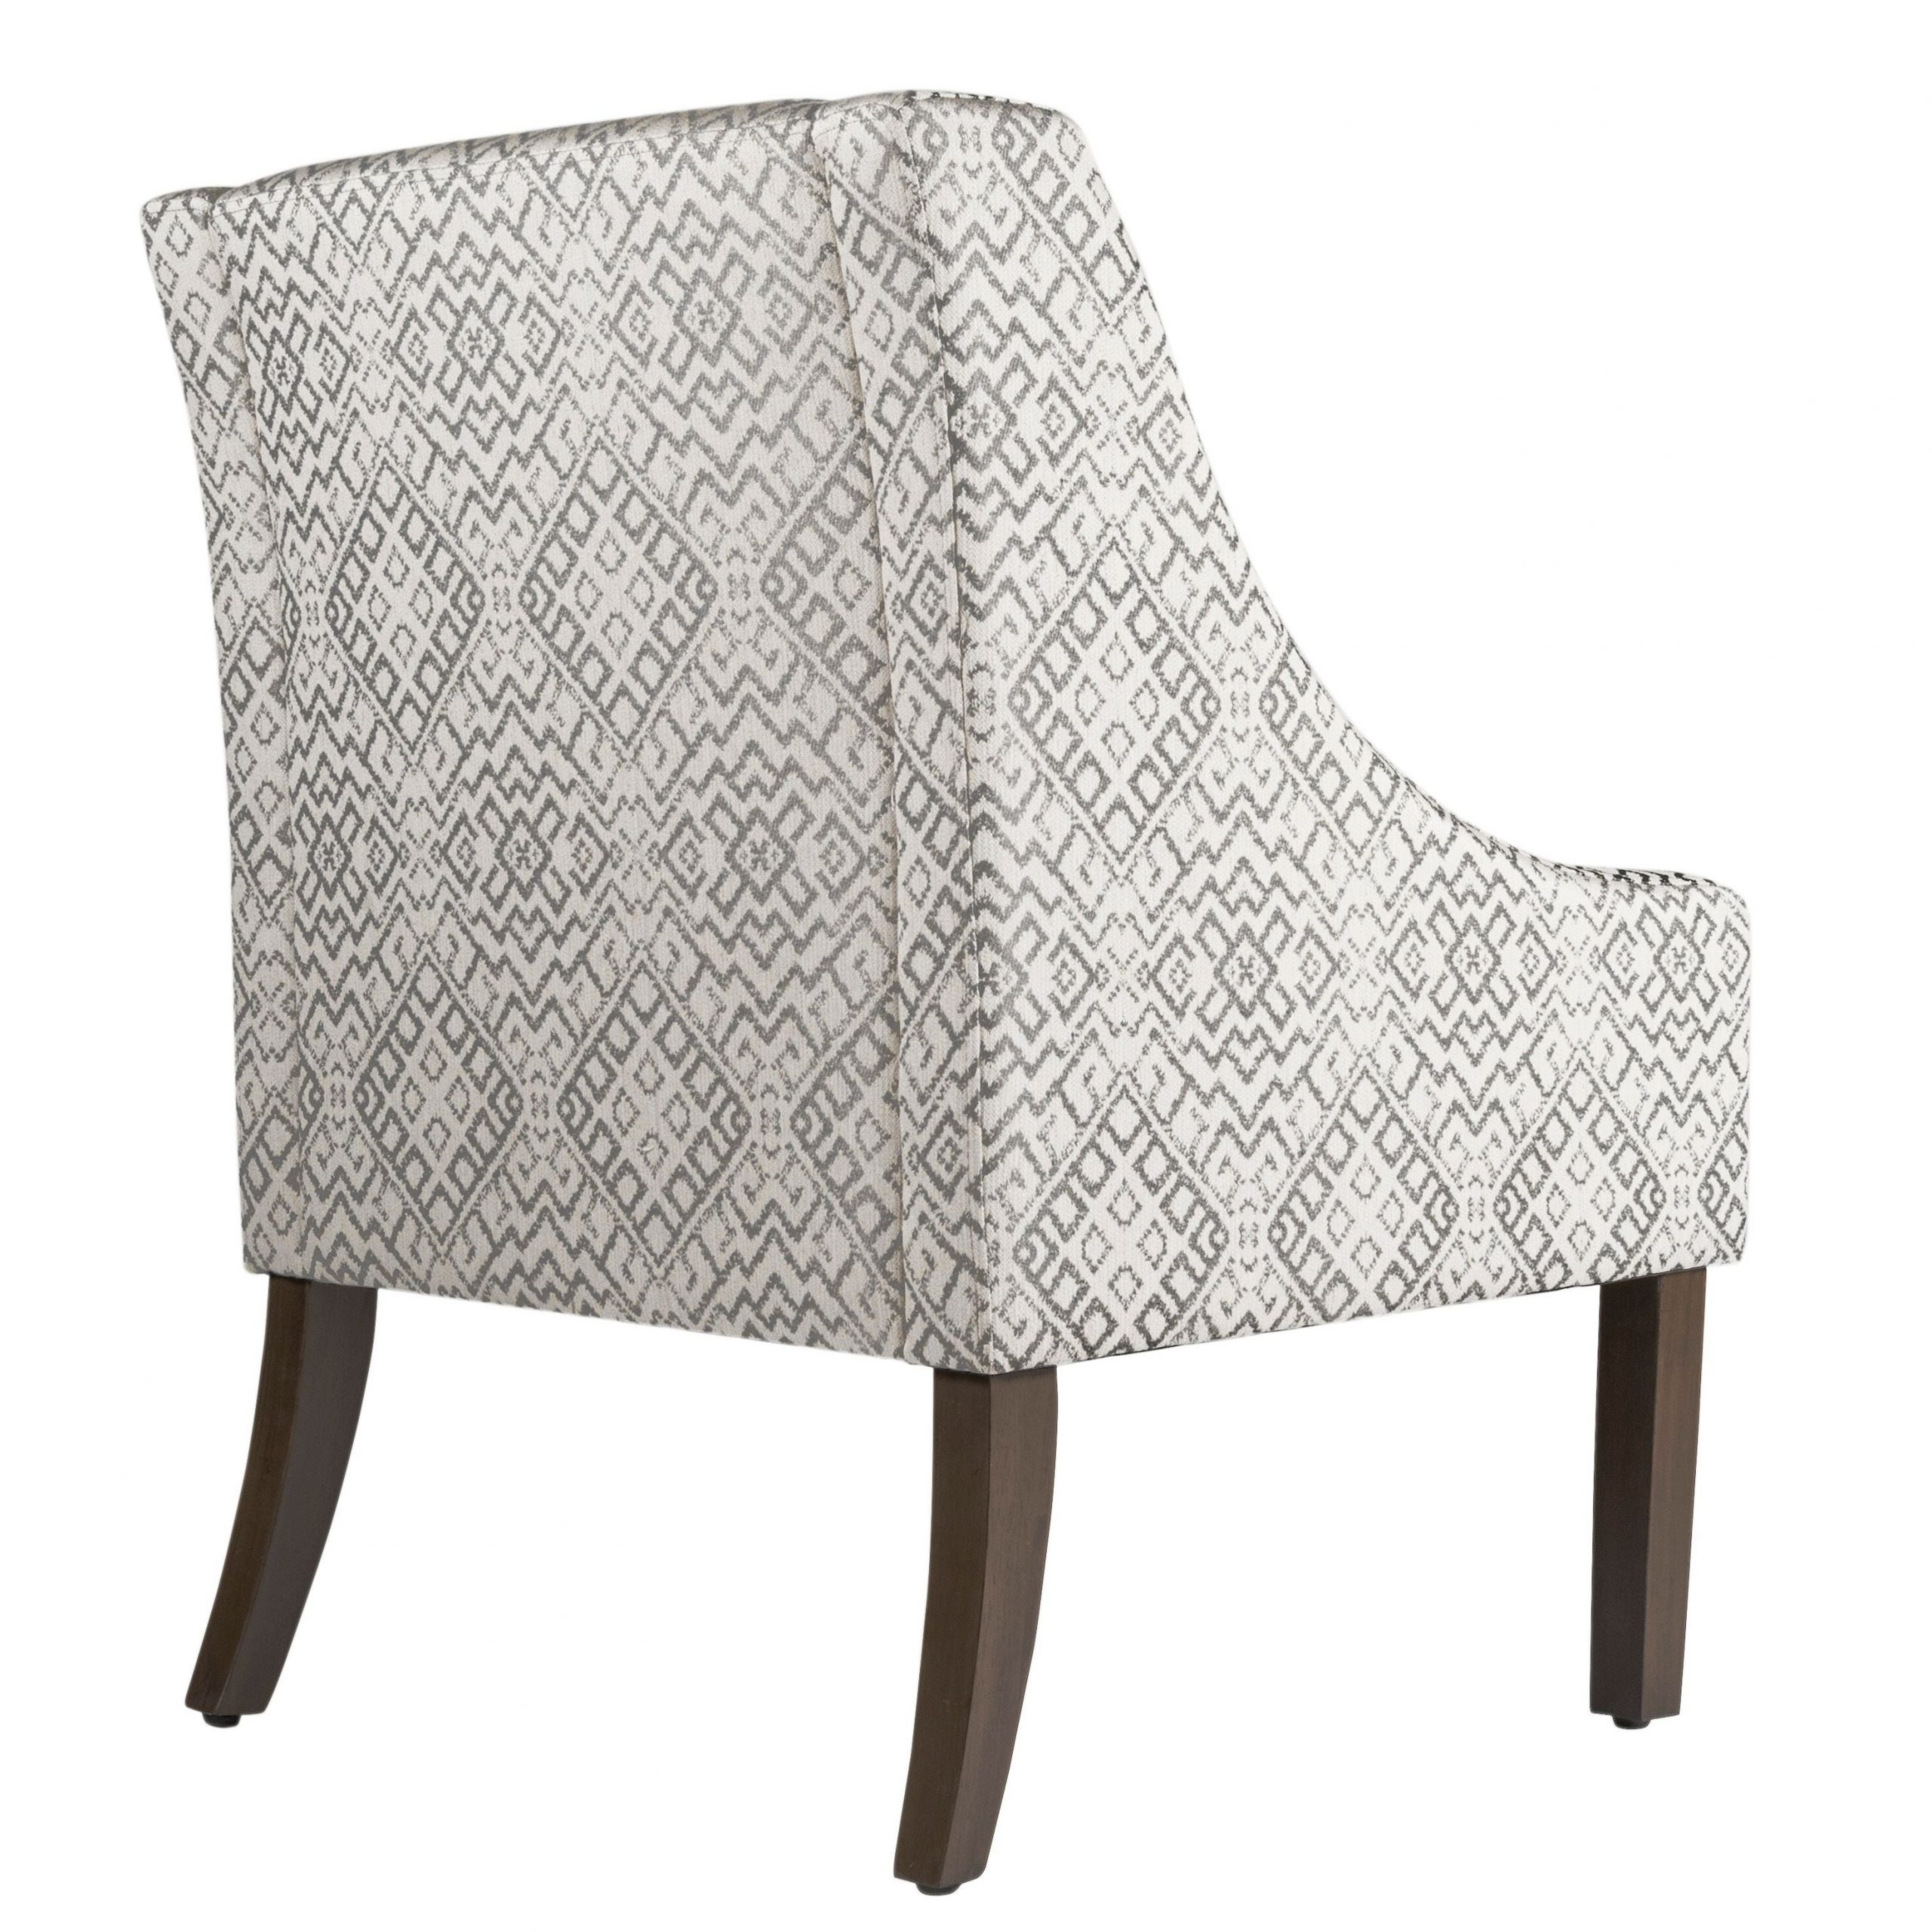 Homepop Swoop Accent Chair In Tonal Gray Within Well Known Altamahaw Swoop Side Chairs (View 20 of 20)